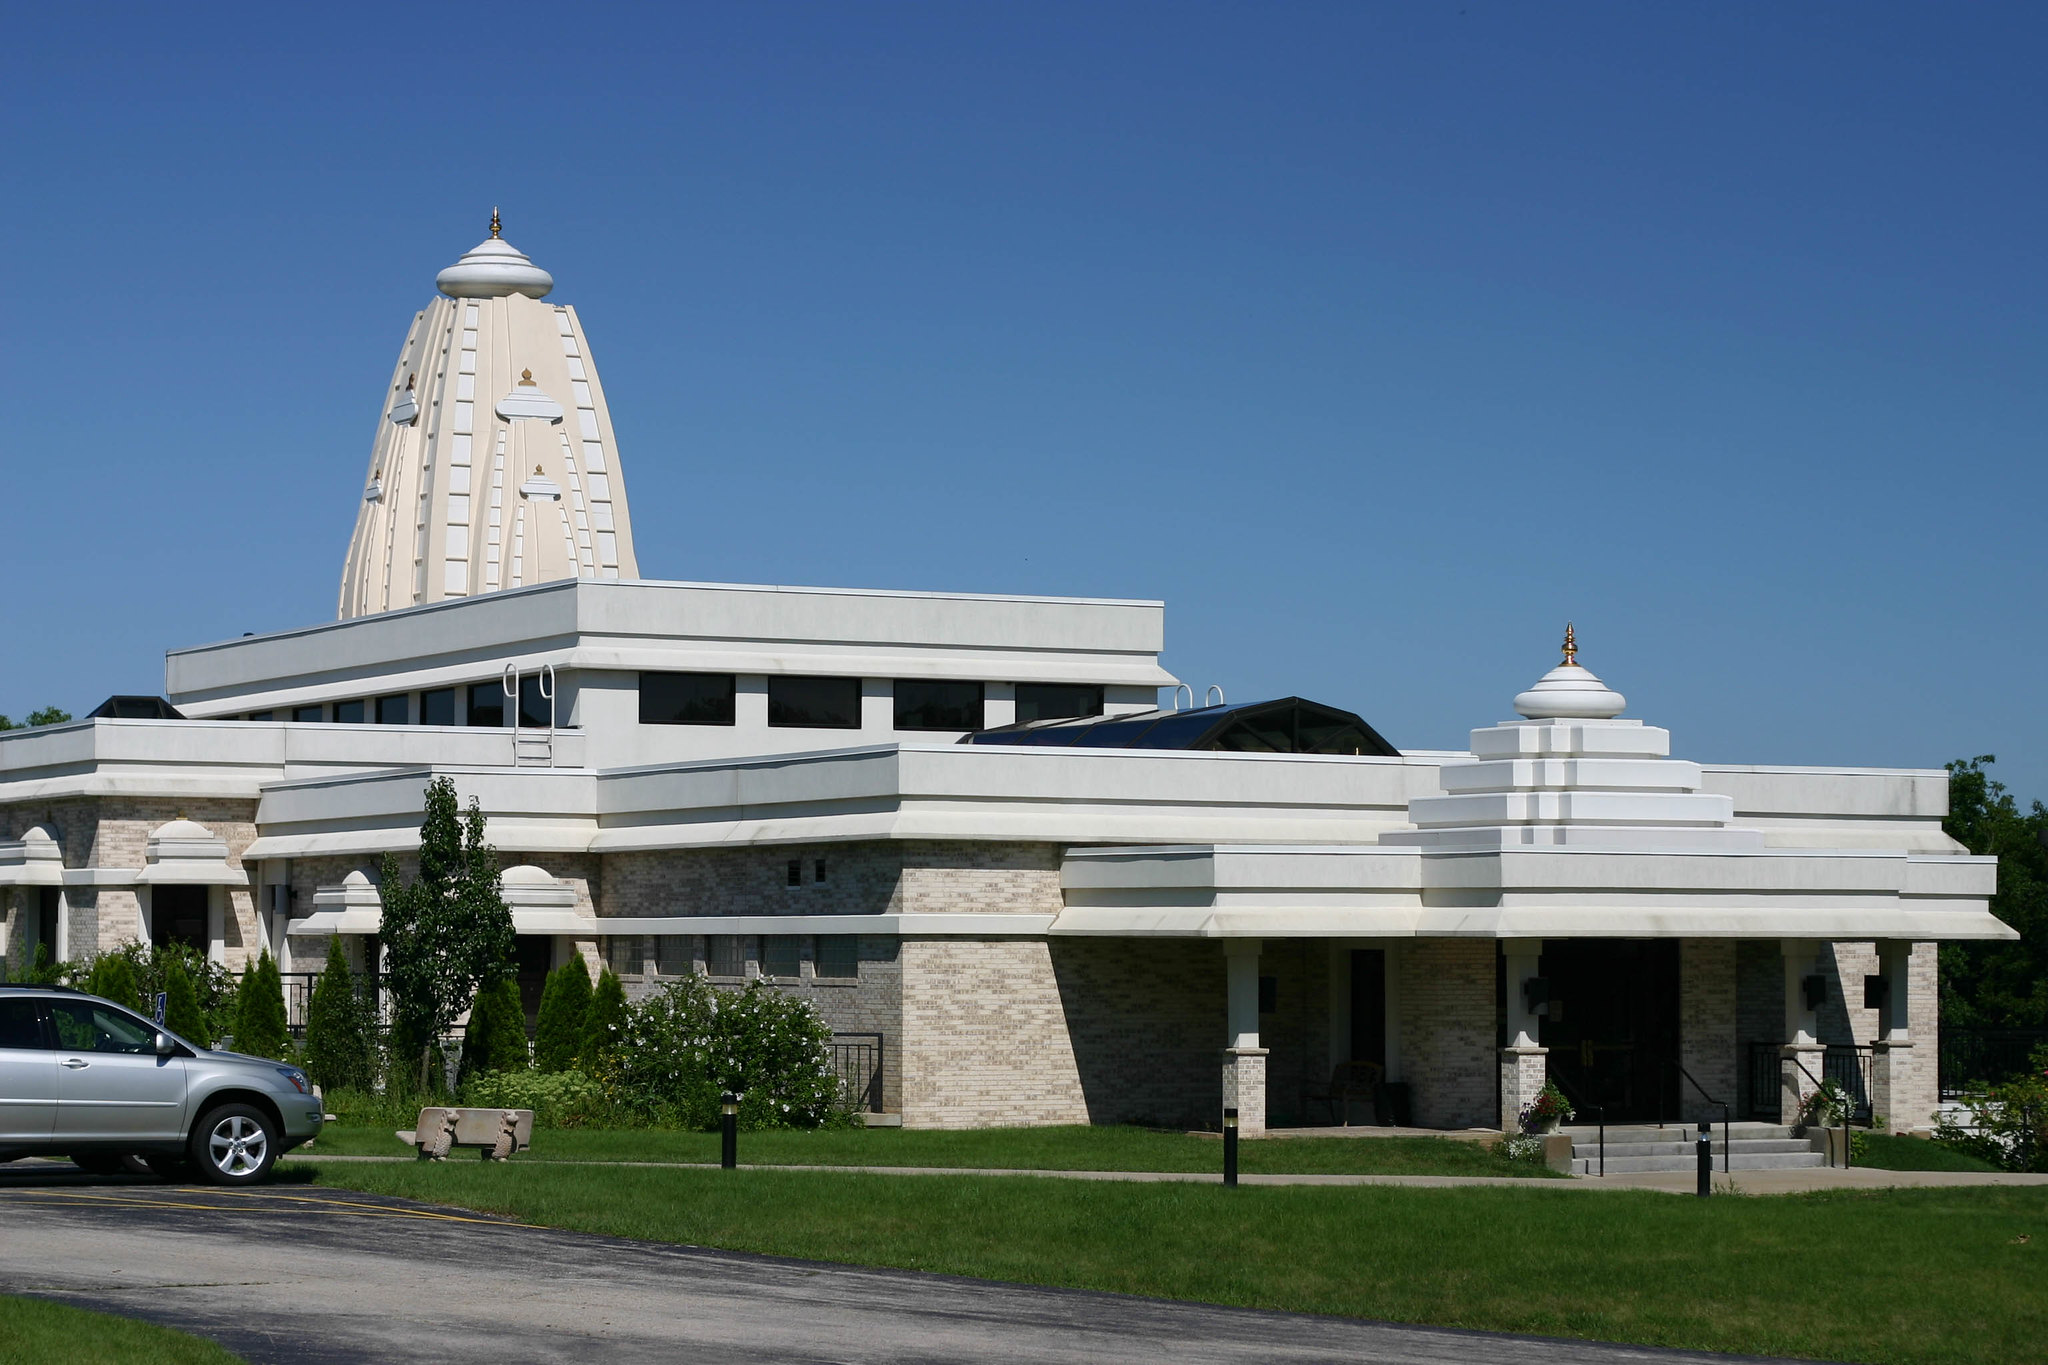 The Hindu Temple of Wisconsin in Pewaukee opened in 2000. Members of the local Jain community also partnered with Hindu community members to construct a Jain Temple that is integrated into the structure.